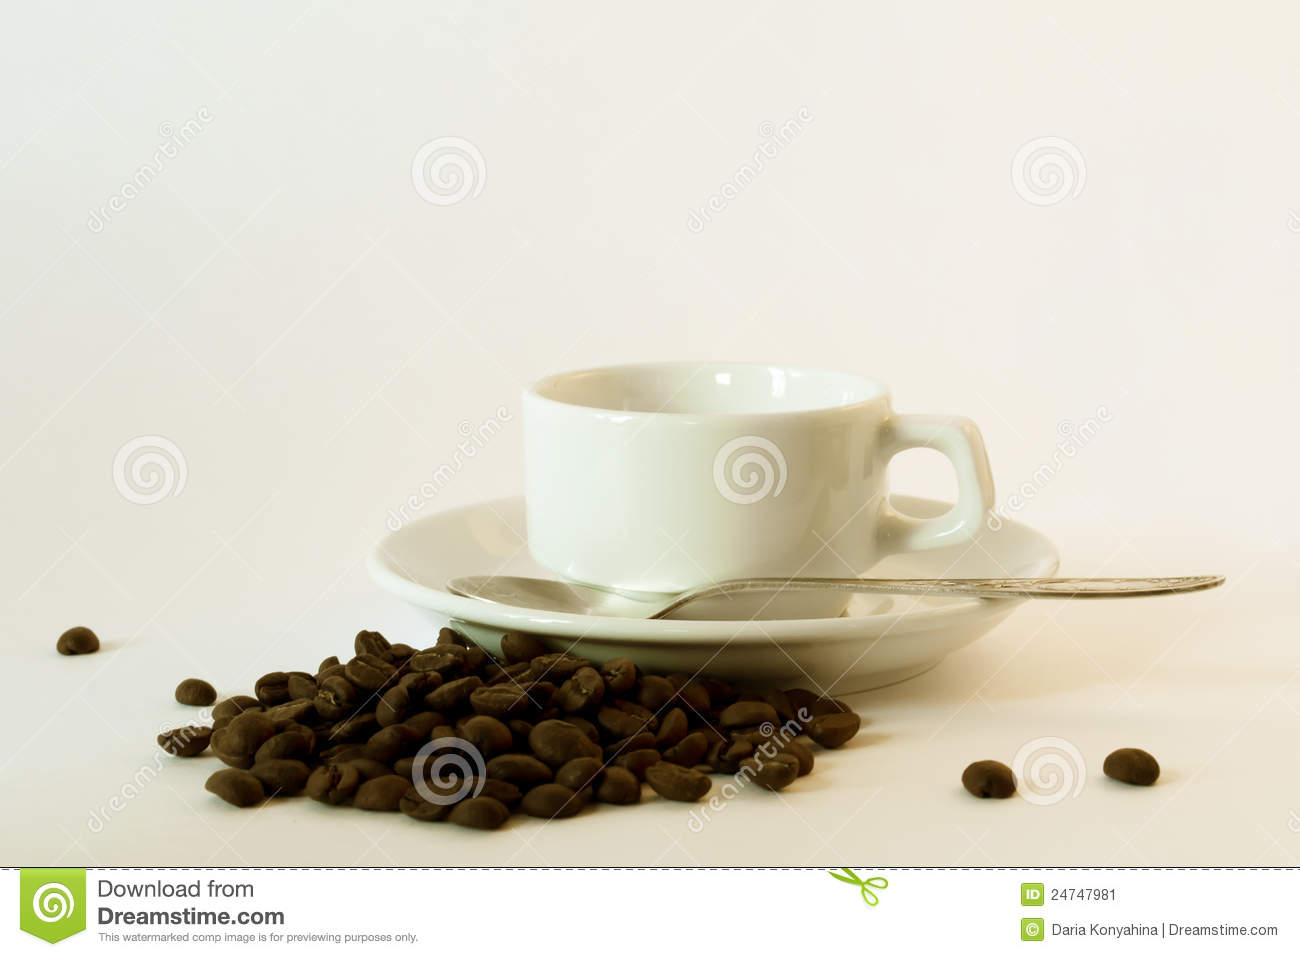 White coffee cup and saucer